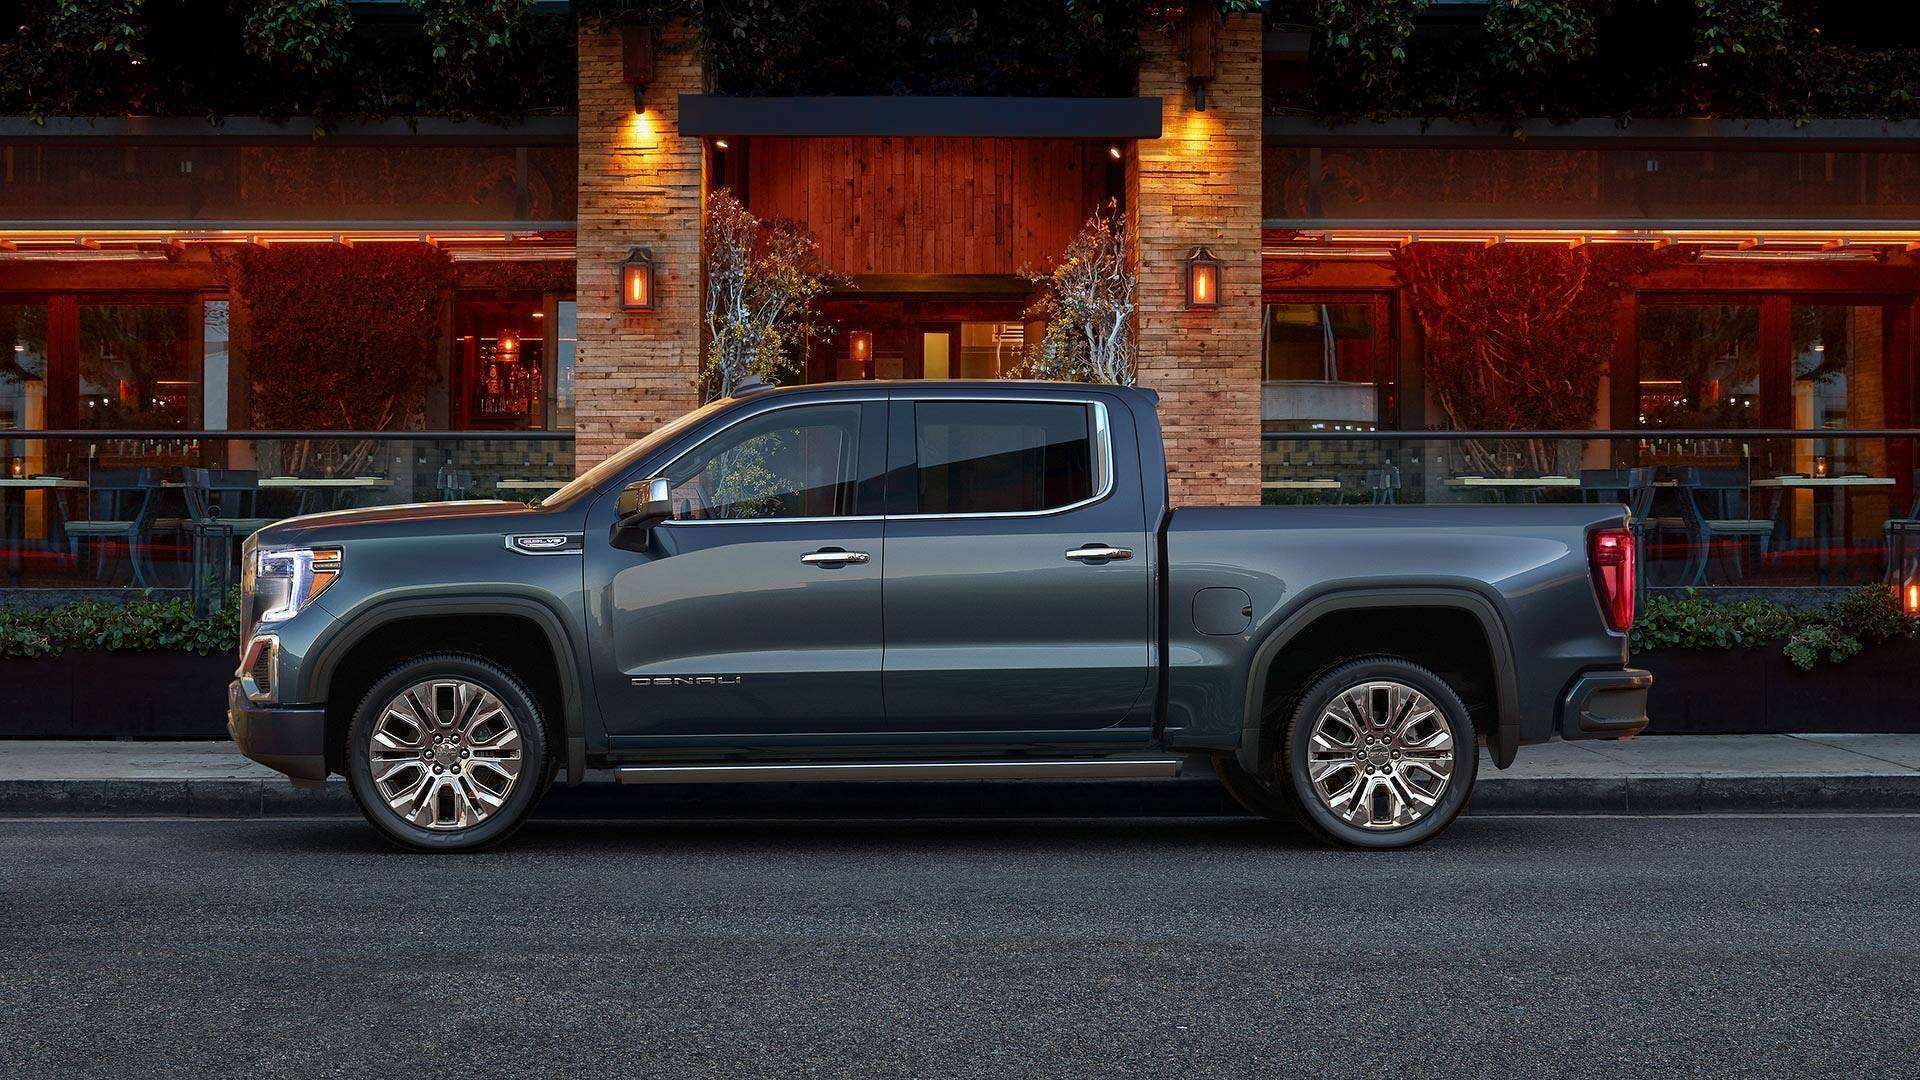 79 Gallery of 2019 Gmc Sierra Rendering Configurations for 2019 Gmc Sierra Rendering